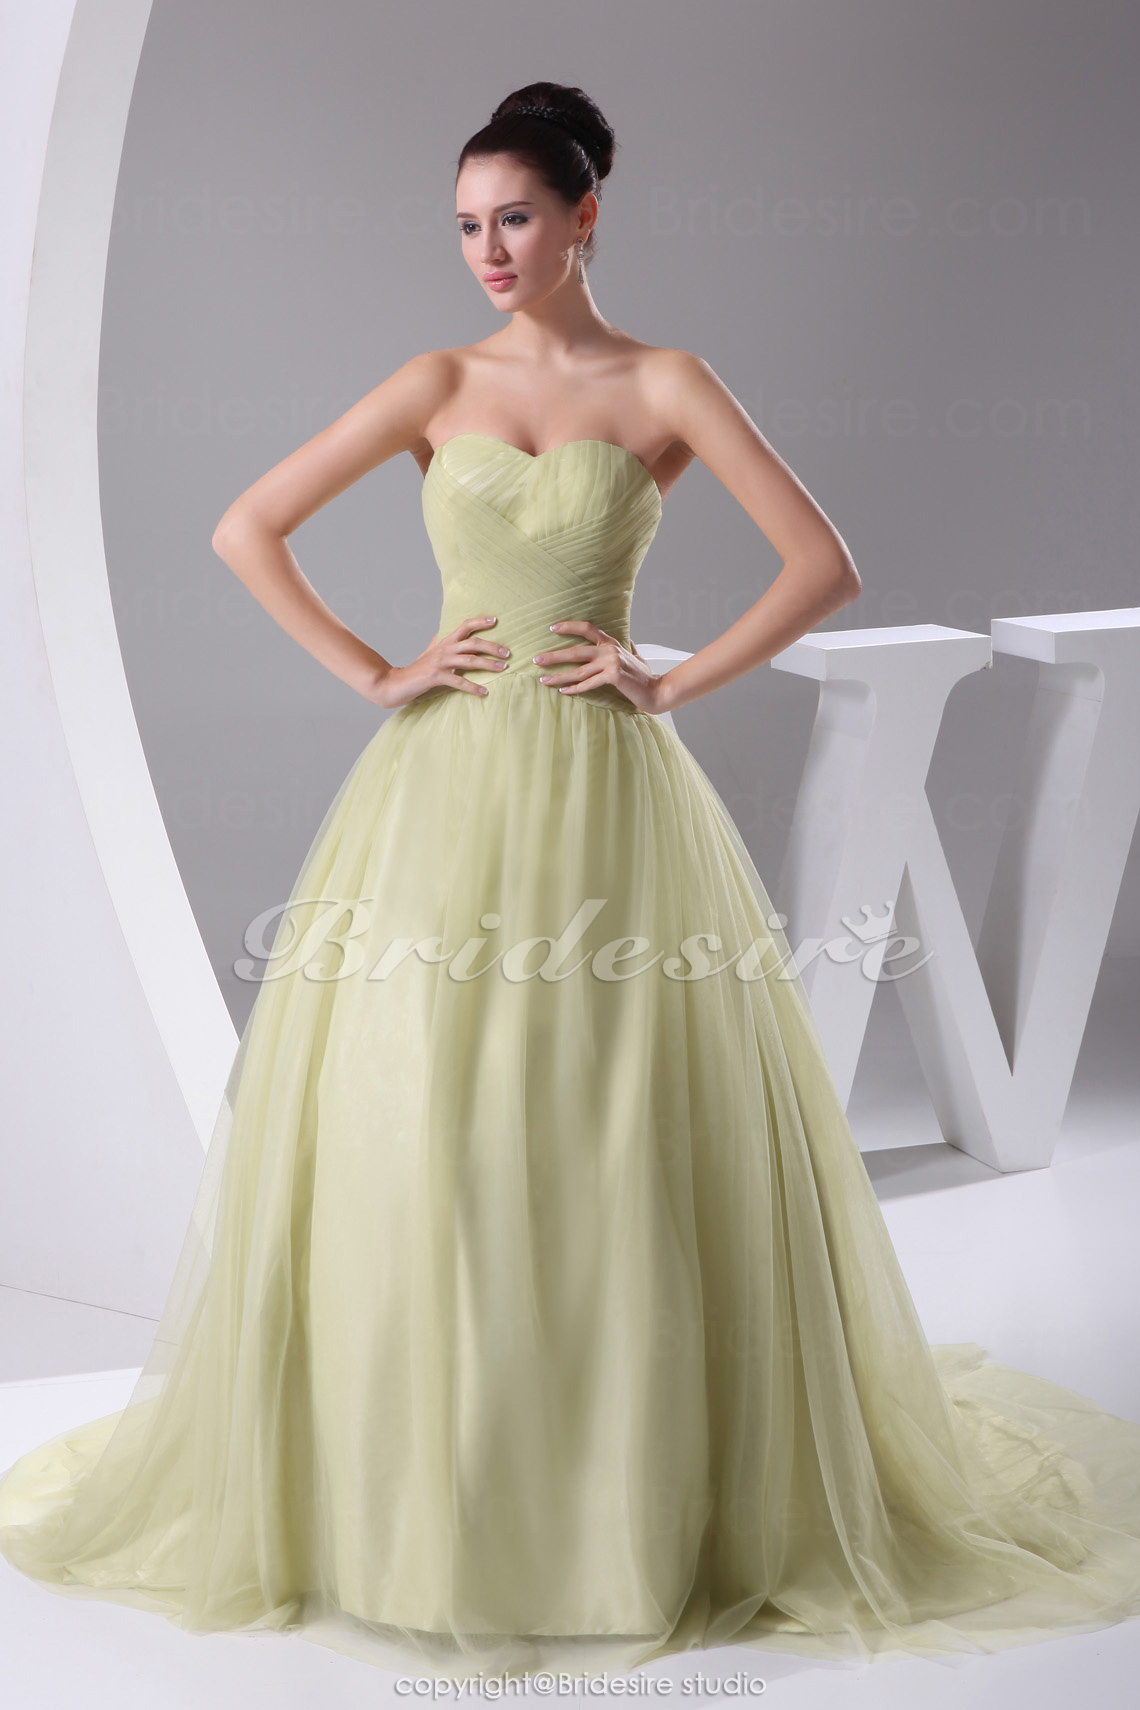 Ball Gown Sweetheart Court Train Sleeveless Tulle Dress